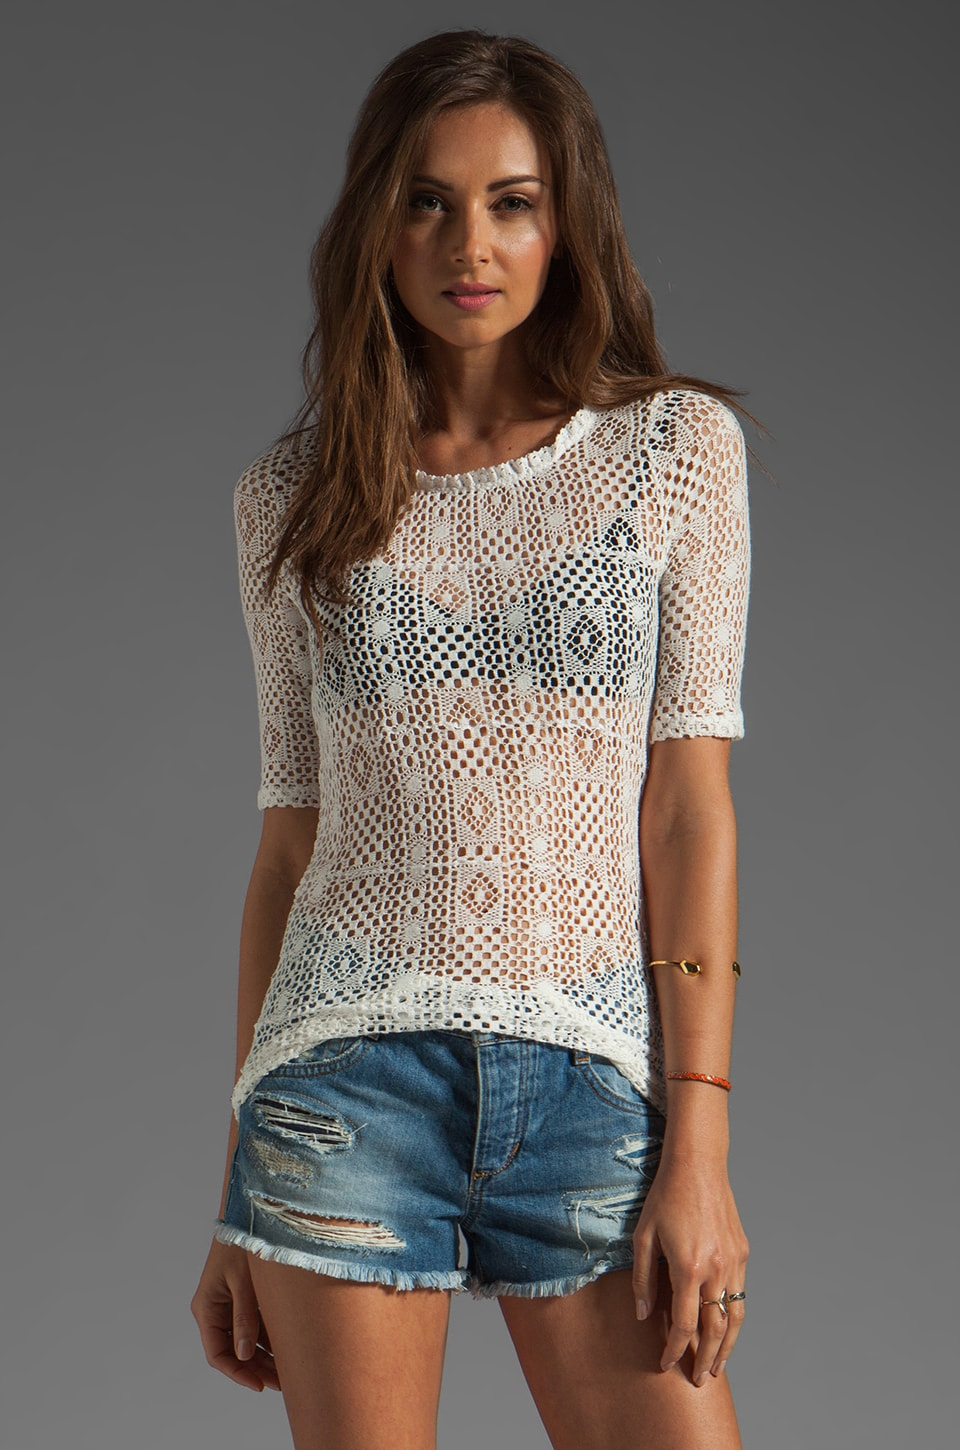 Free People Geolace Top in Ivory Combo